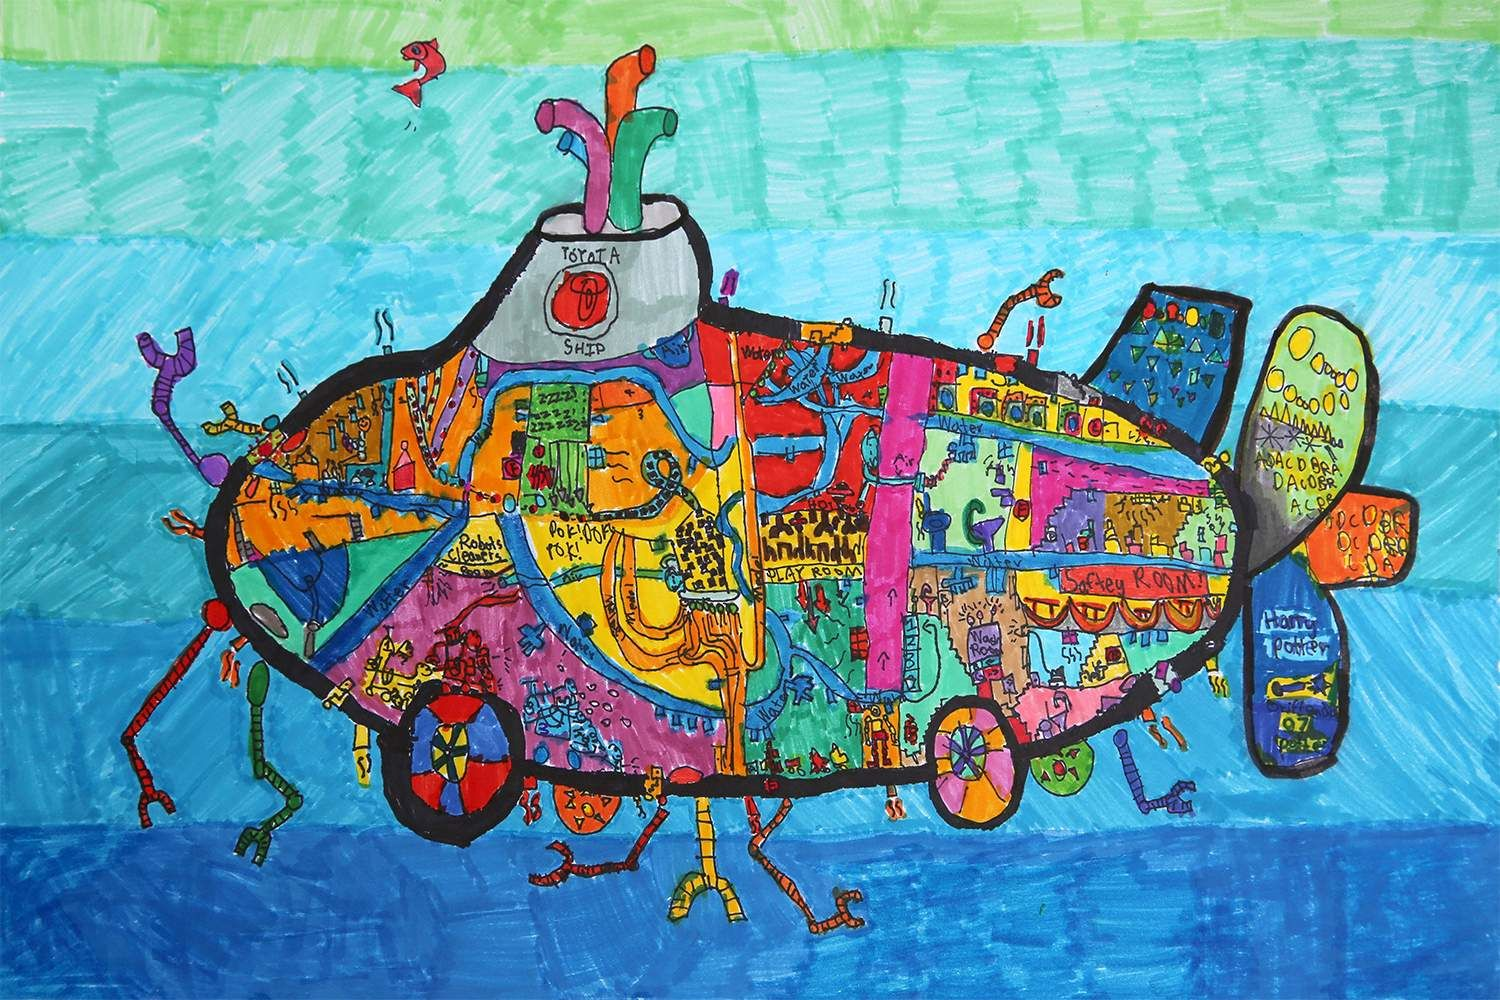 Recycling Submarine Car Jacob Gaochen, age 6